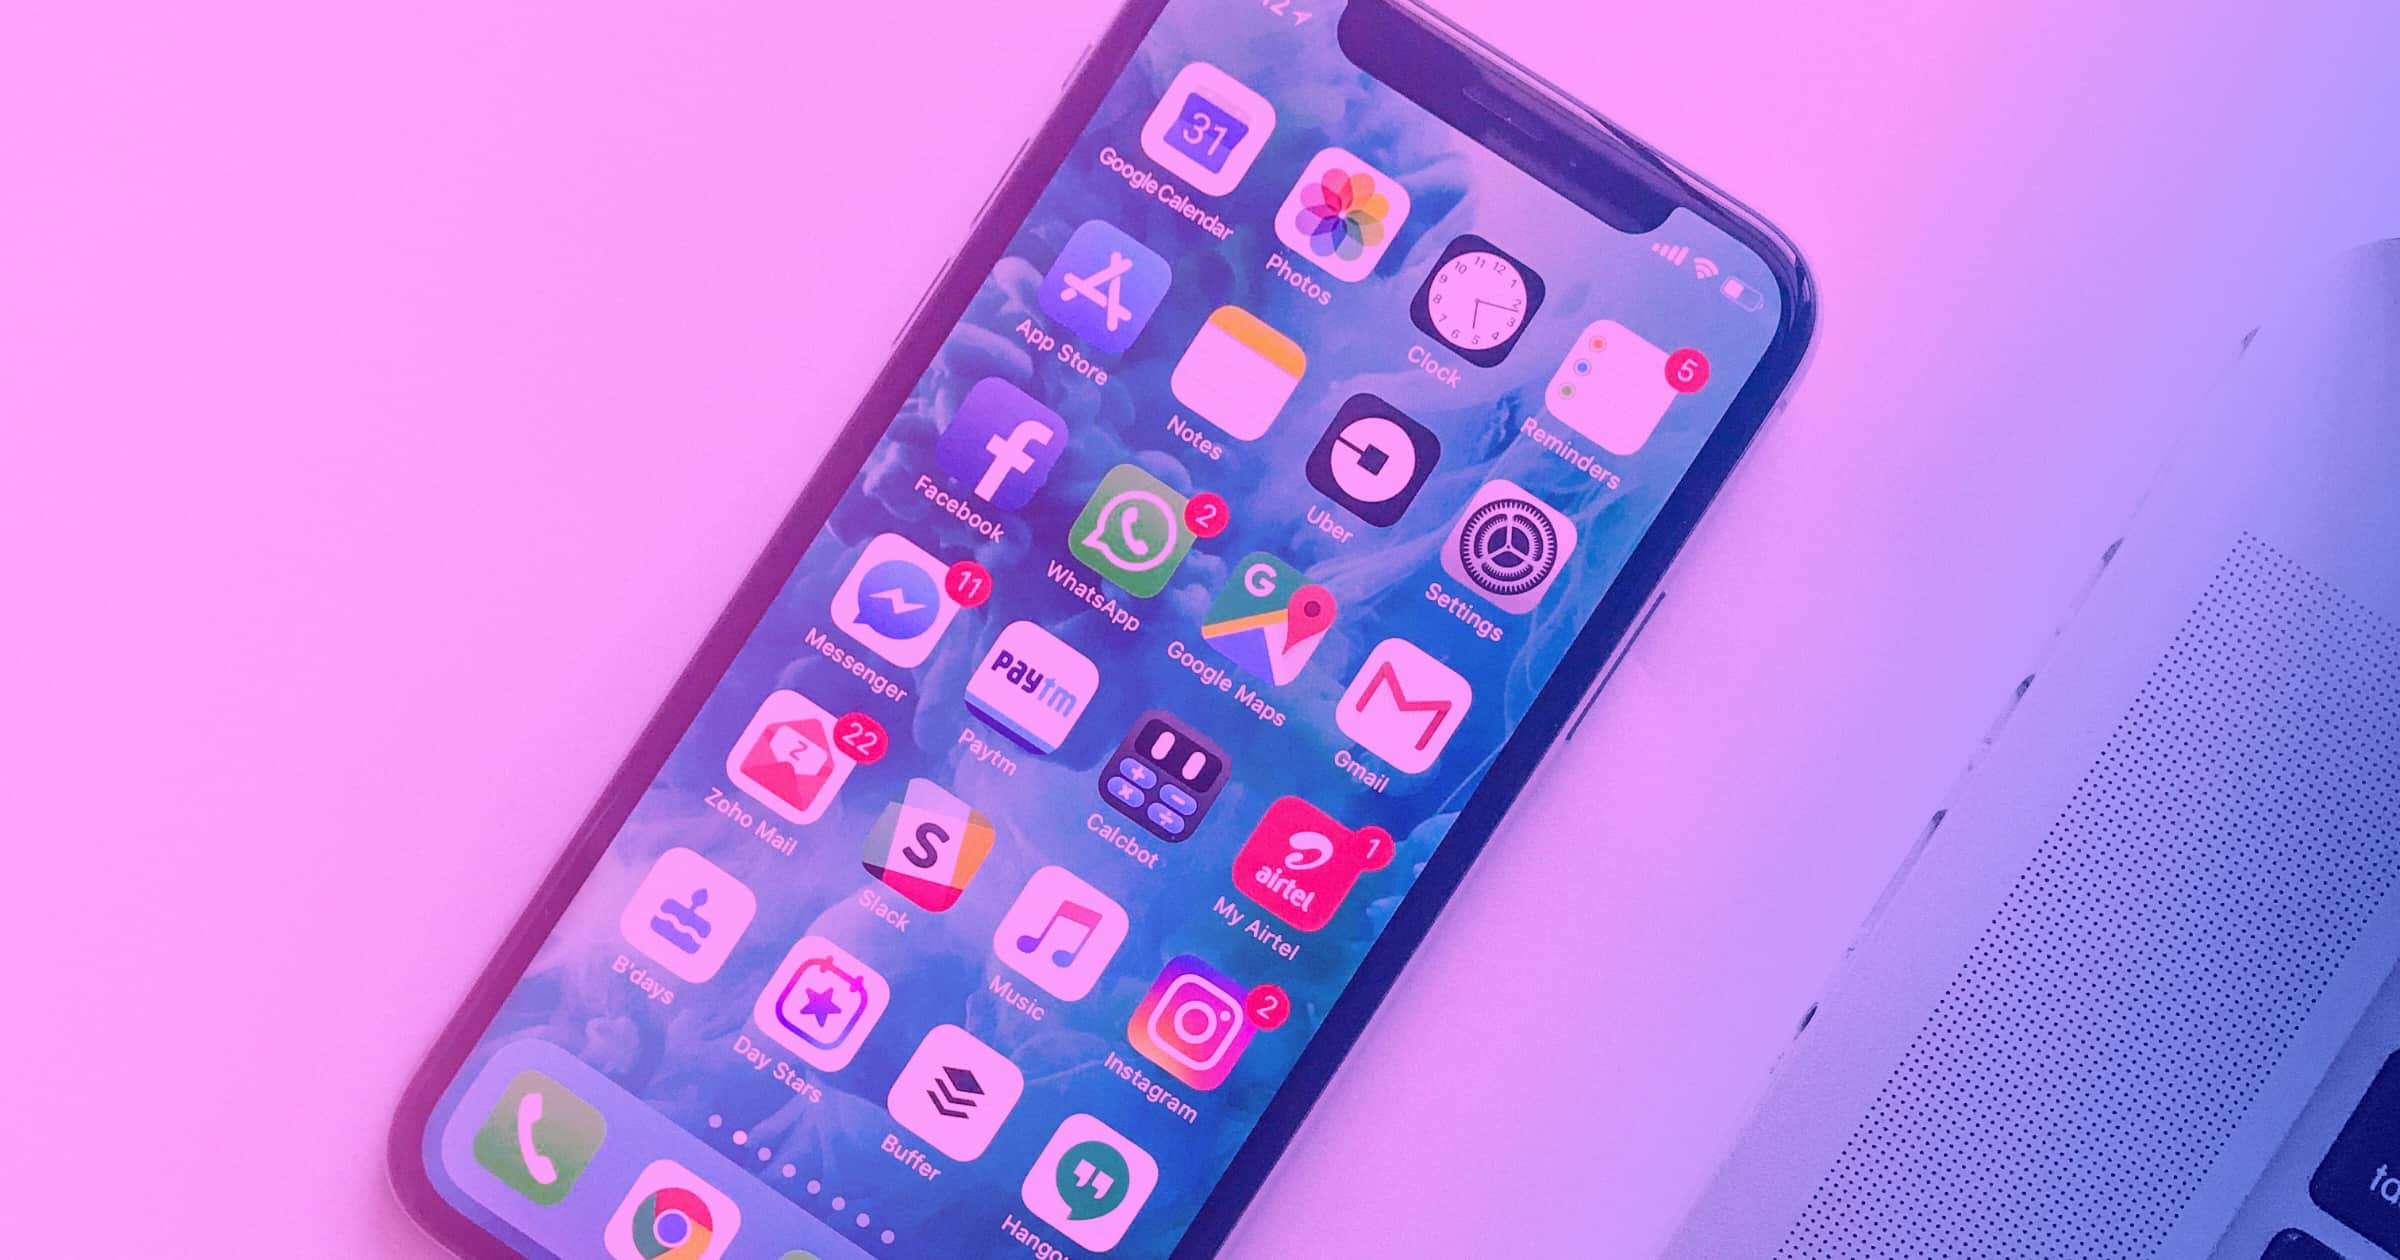 An image of a smartphone with some of the essential design apps on the iPhone's home screen